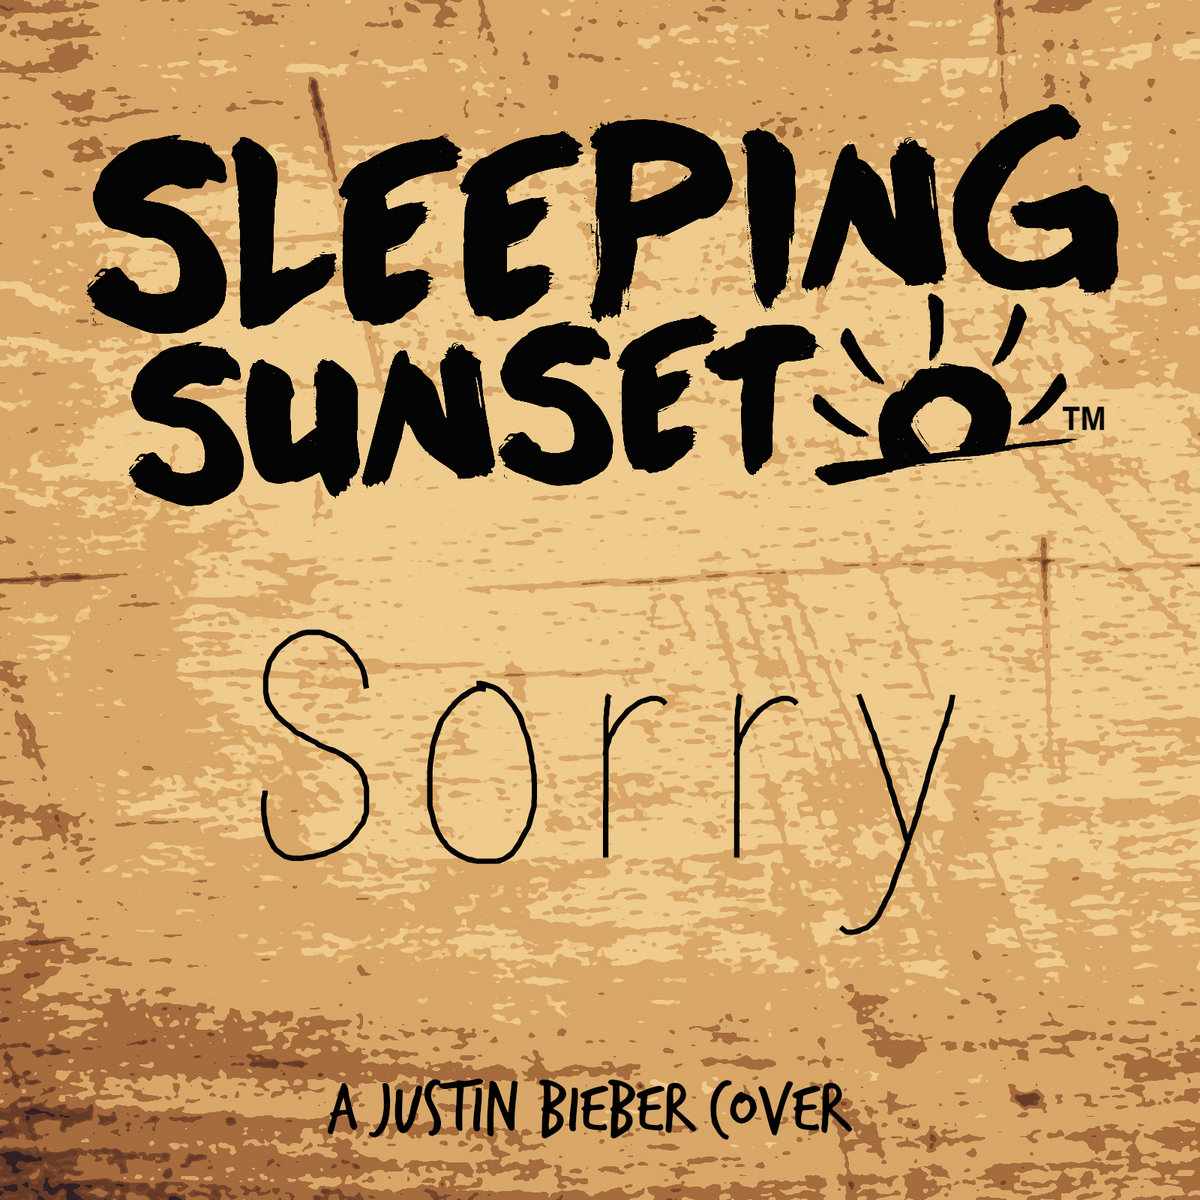 Sorry (A Justin Bieber Cover) by Sleeping Sunset